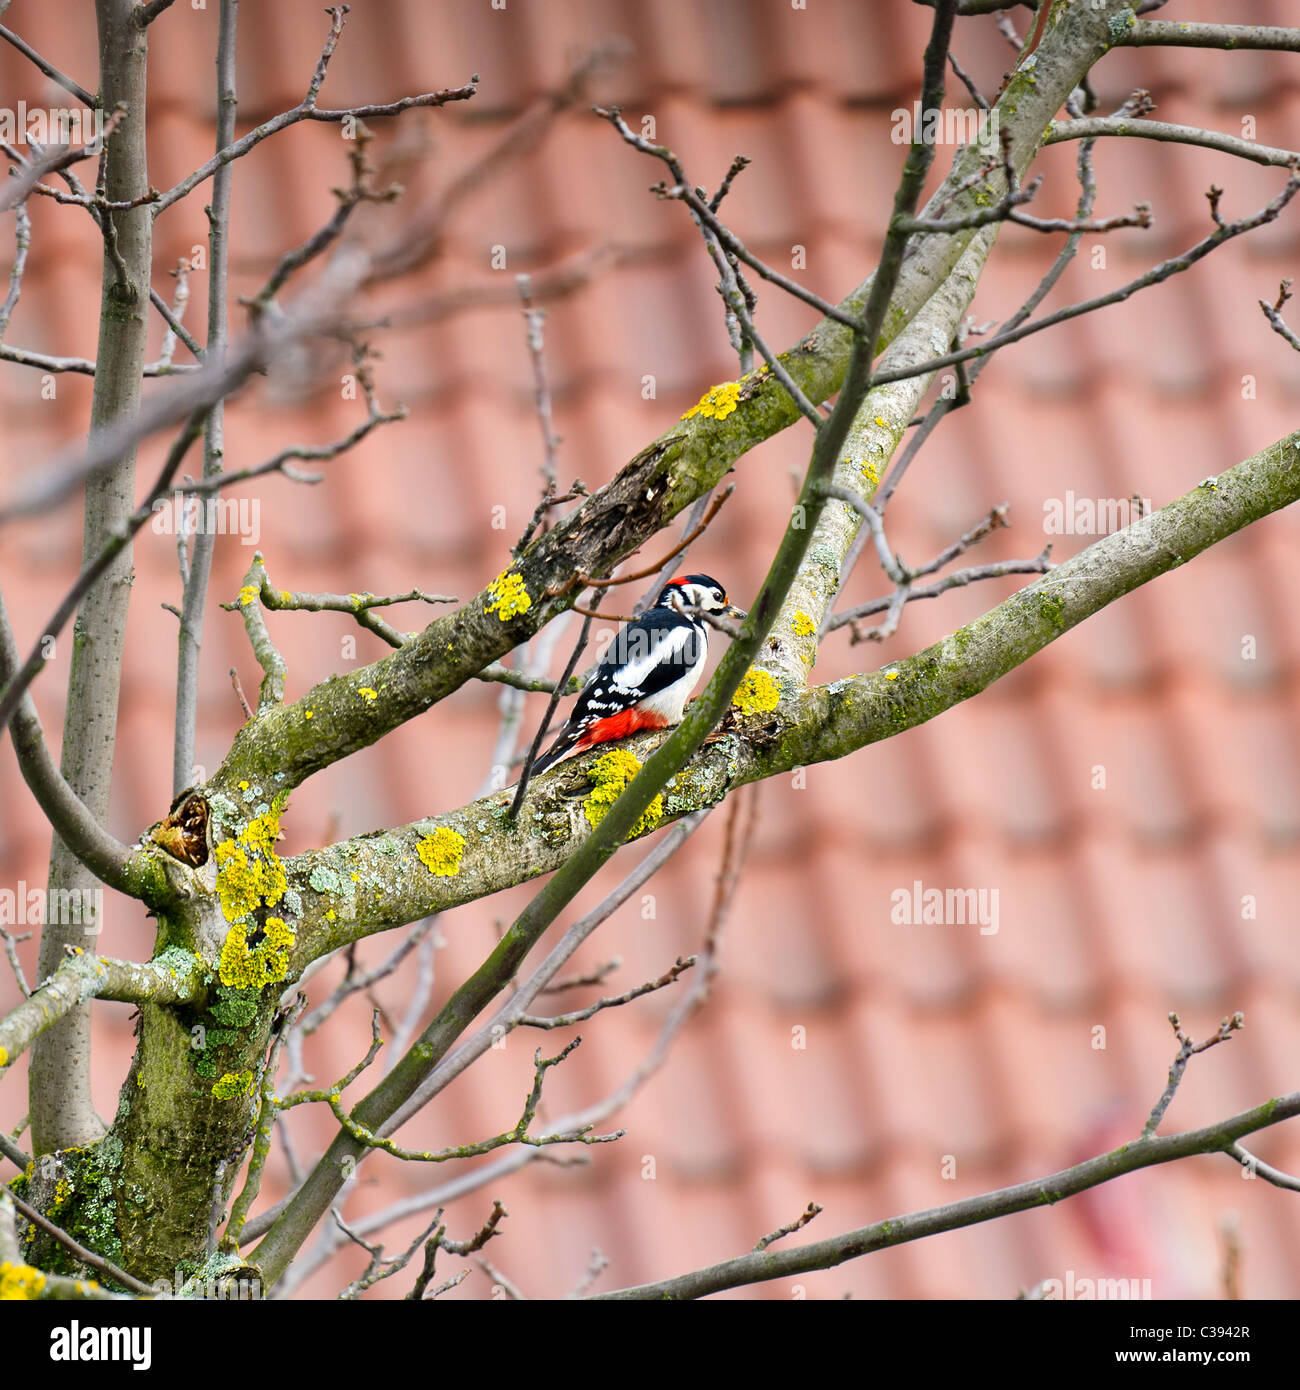 Lesser spotted woodpecker perched on nuts tree branch, Dendrocopos minor, Germany, Europe - Stock Image